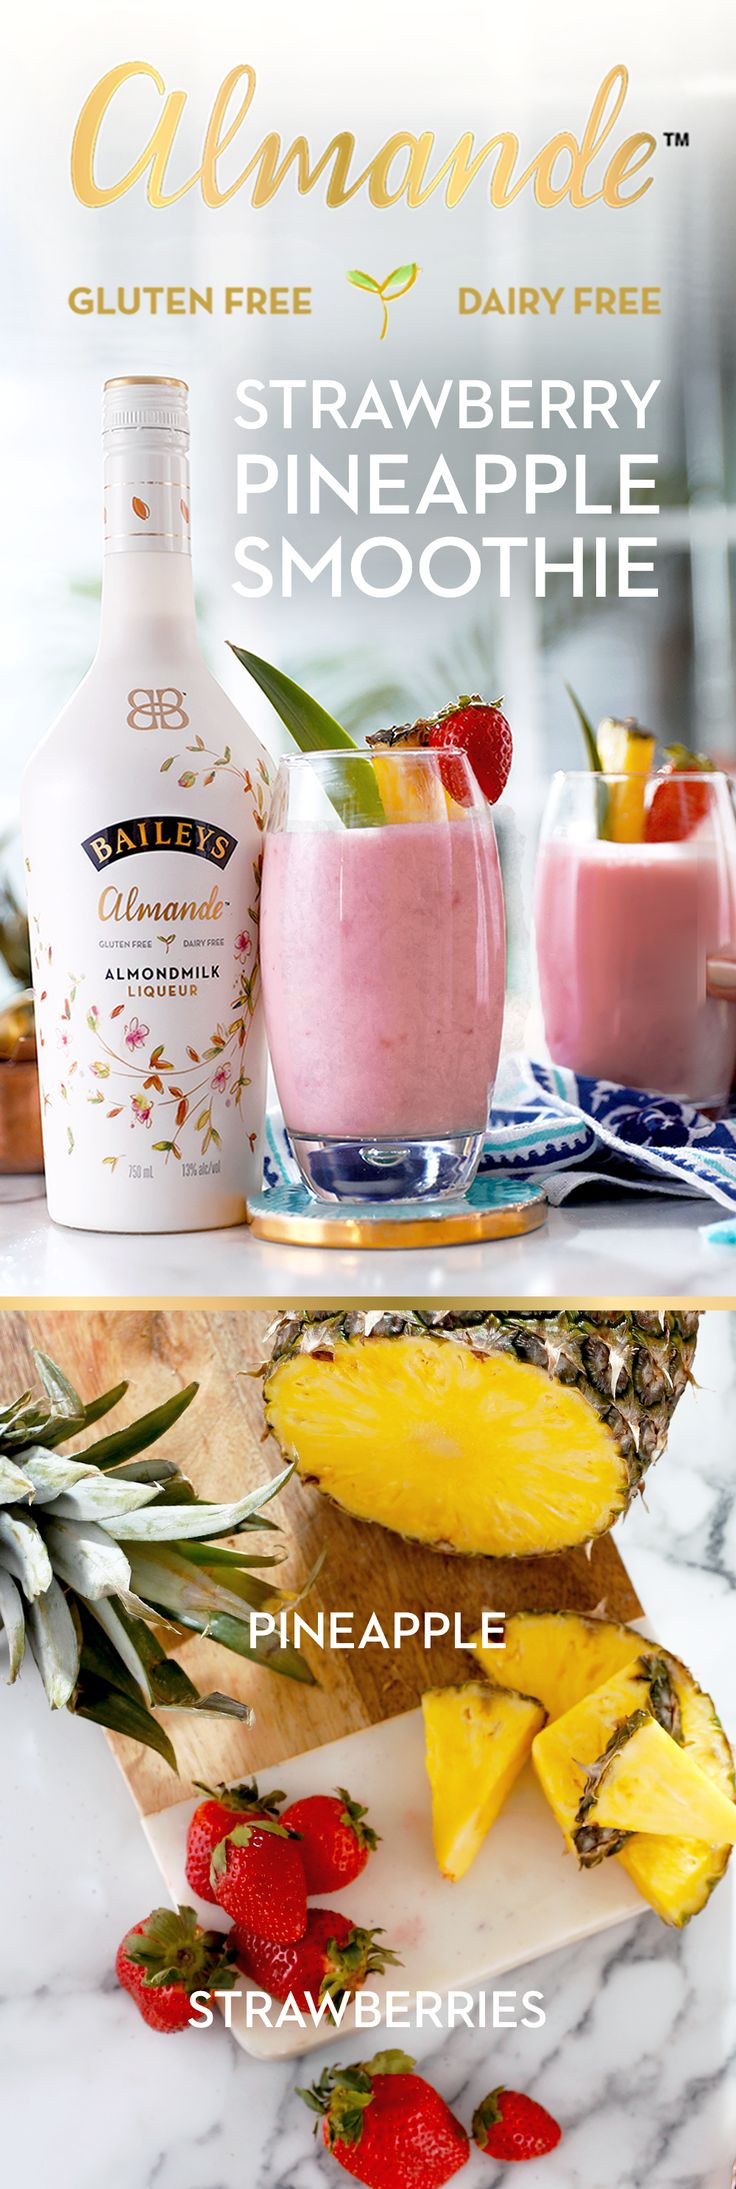 Hot days beware. This fresh combo gives the classic fruit smoothie a light-tasting upgrade with Baileys Almande - the new dairy free, gluten free, and vegan almondmilk liqueur. Simply mix ½ cup pineapple, ½ cup strawberries, 2 oz Baileys Almande, and ½ cup ice cubes and enjoy!